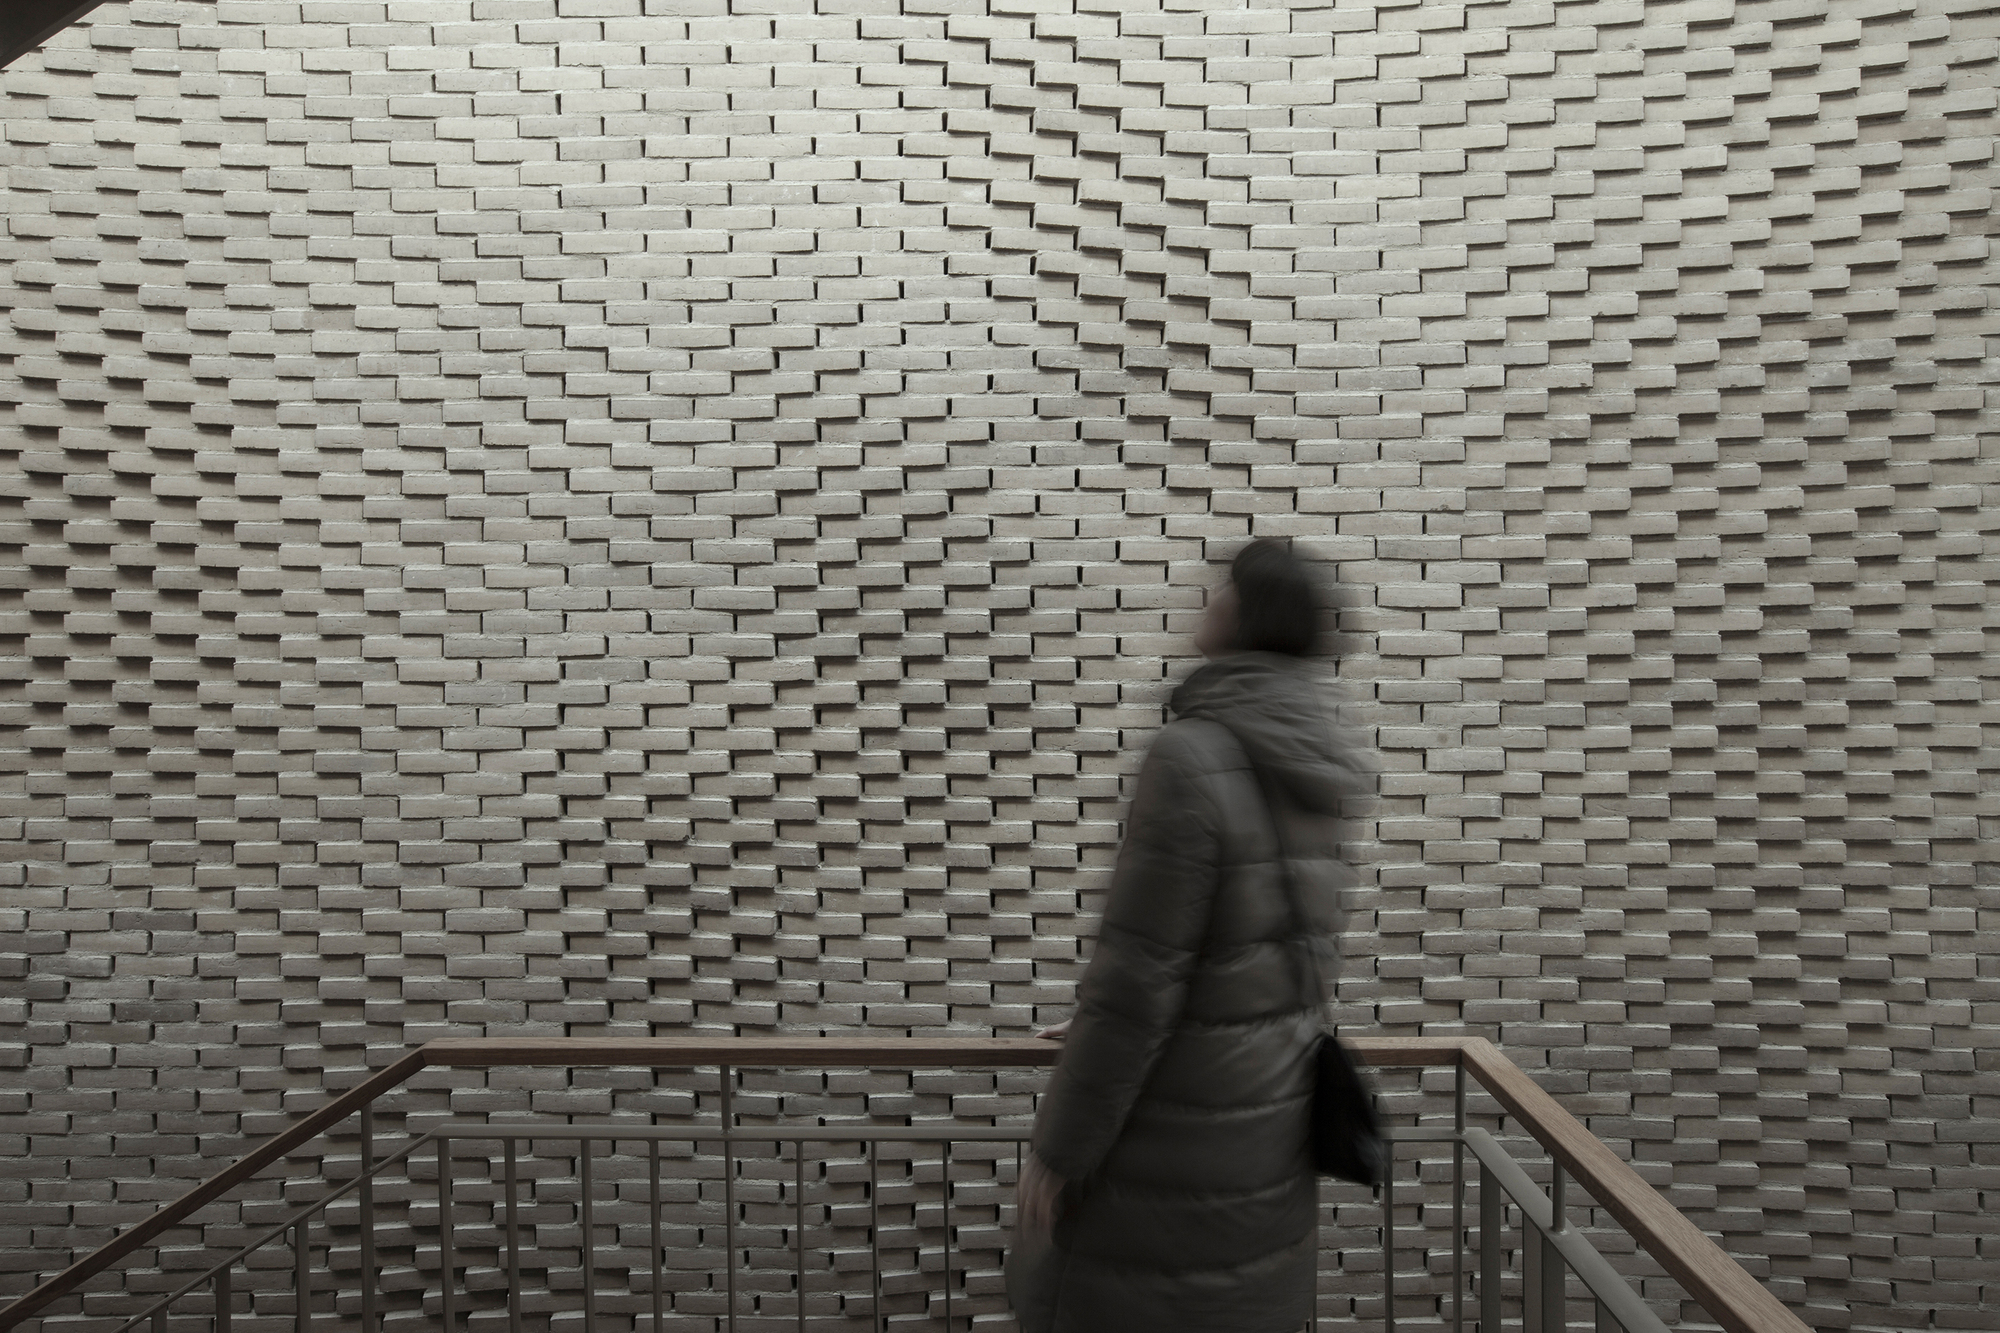 This Hand Laid Brick Feature Wall Was Inspired By Soundwaves In Water C 22quadrat